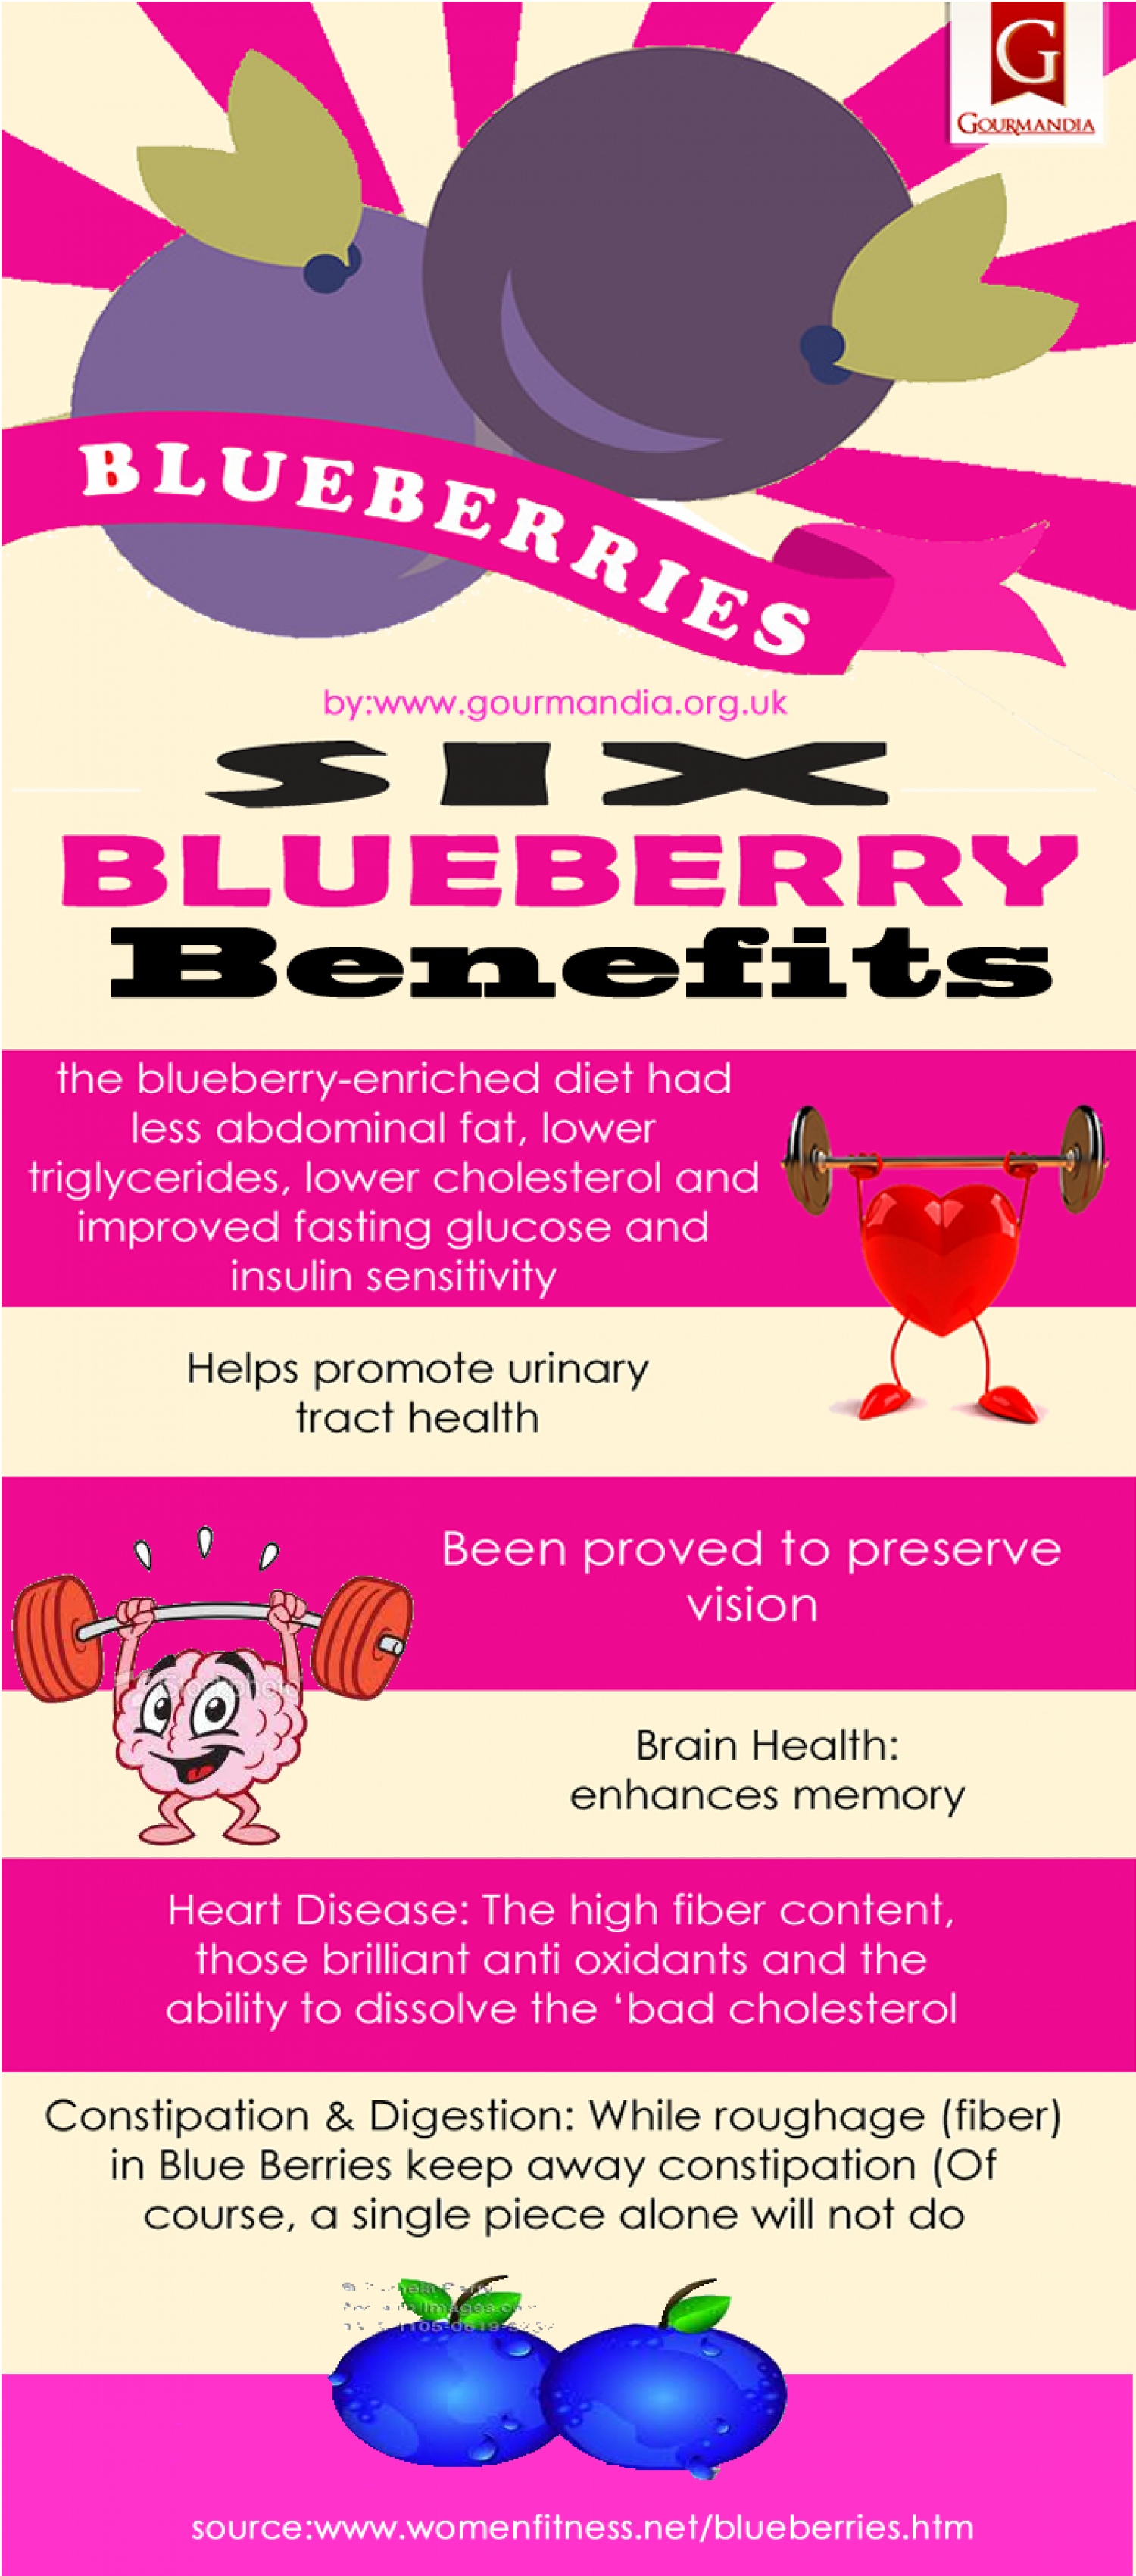 Six Blueberry Benefits Infographic